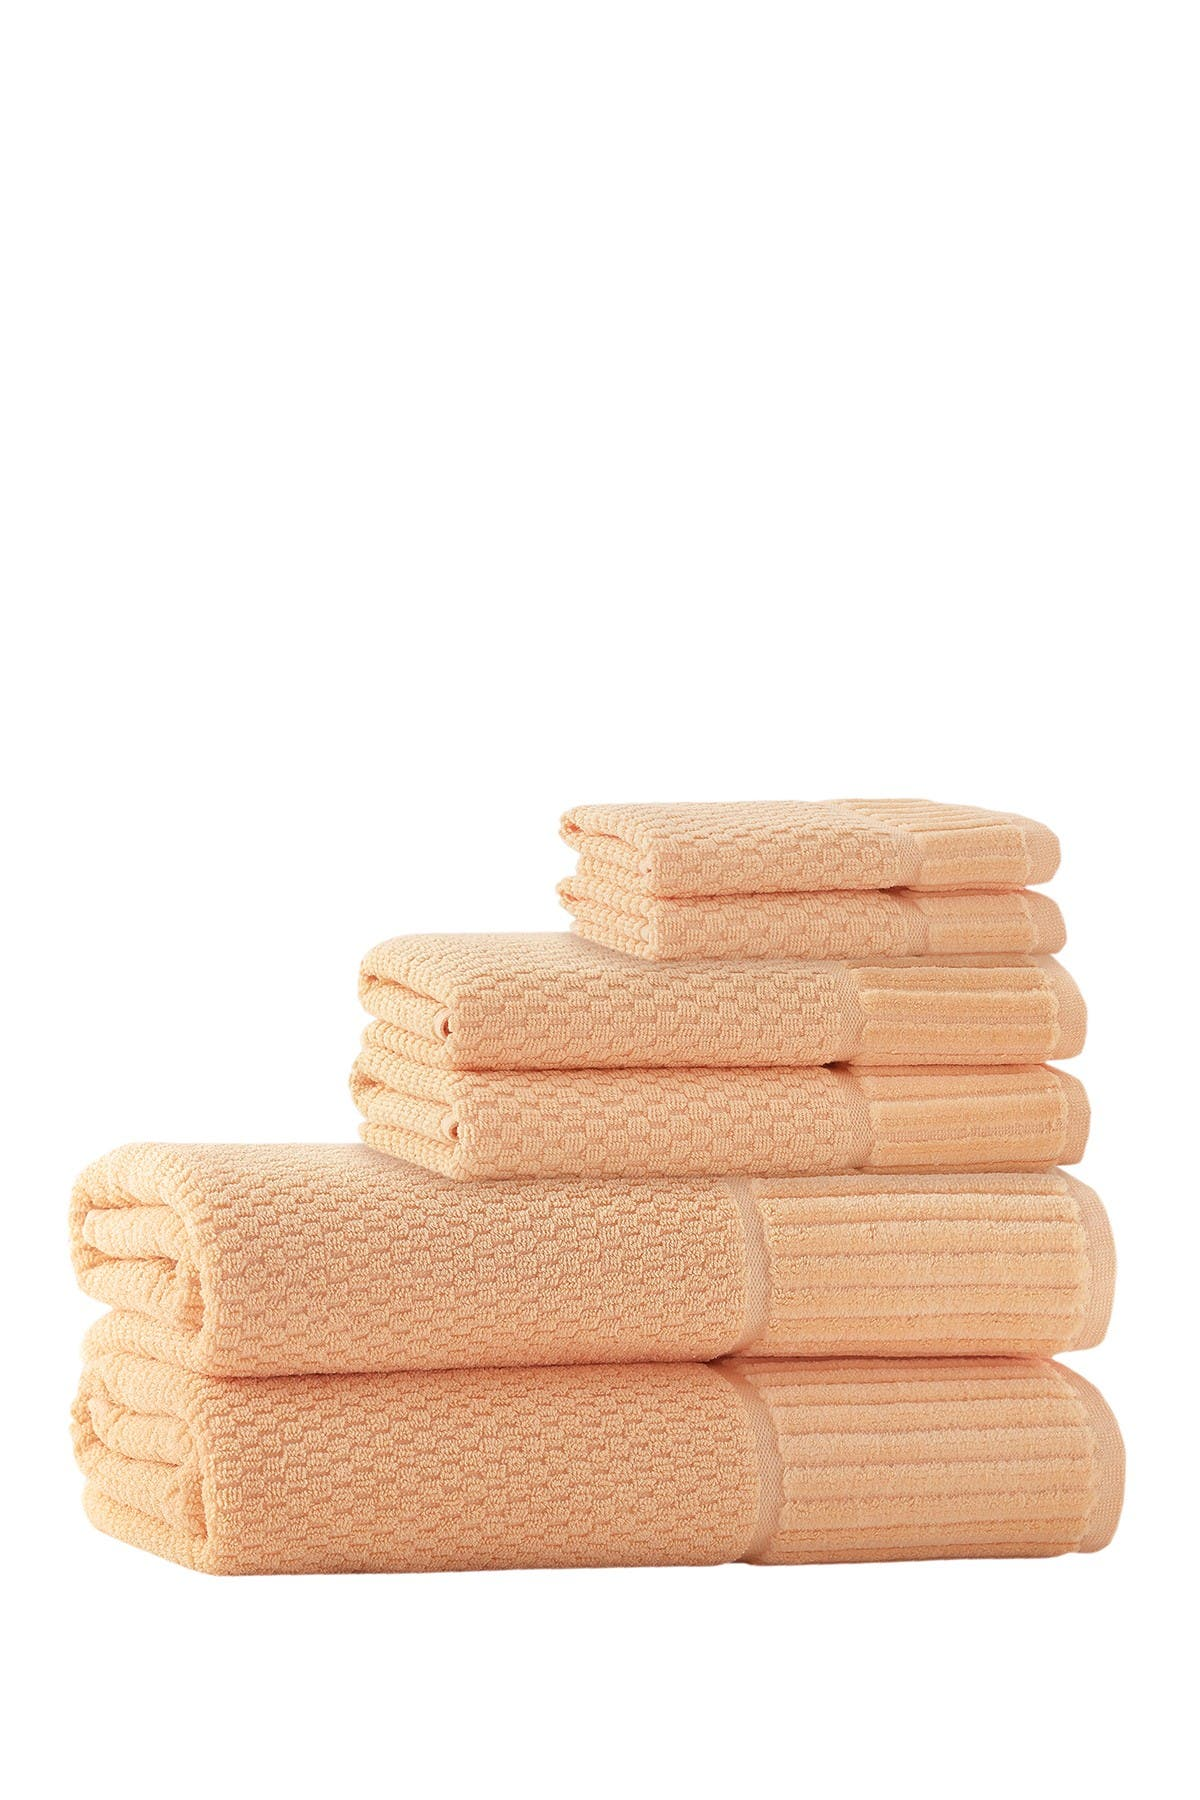 Image of ENCHANTE HOME Timaru Turkish Cotton 6-Piece Towel Set - Somon